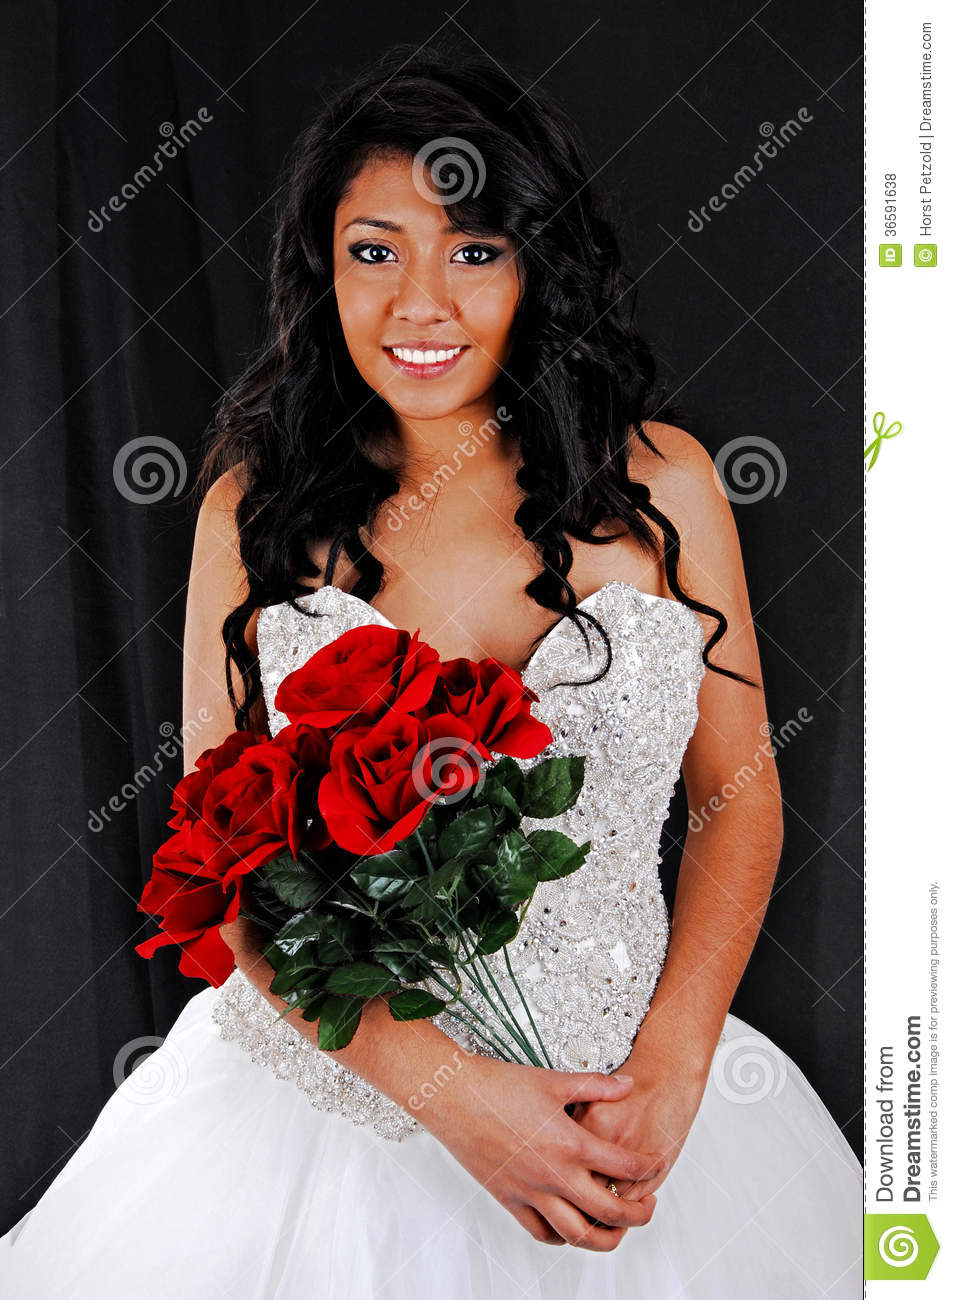 Wedding dress standing forblack background holding a bunch of red